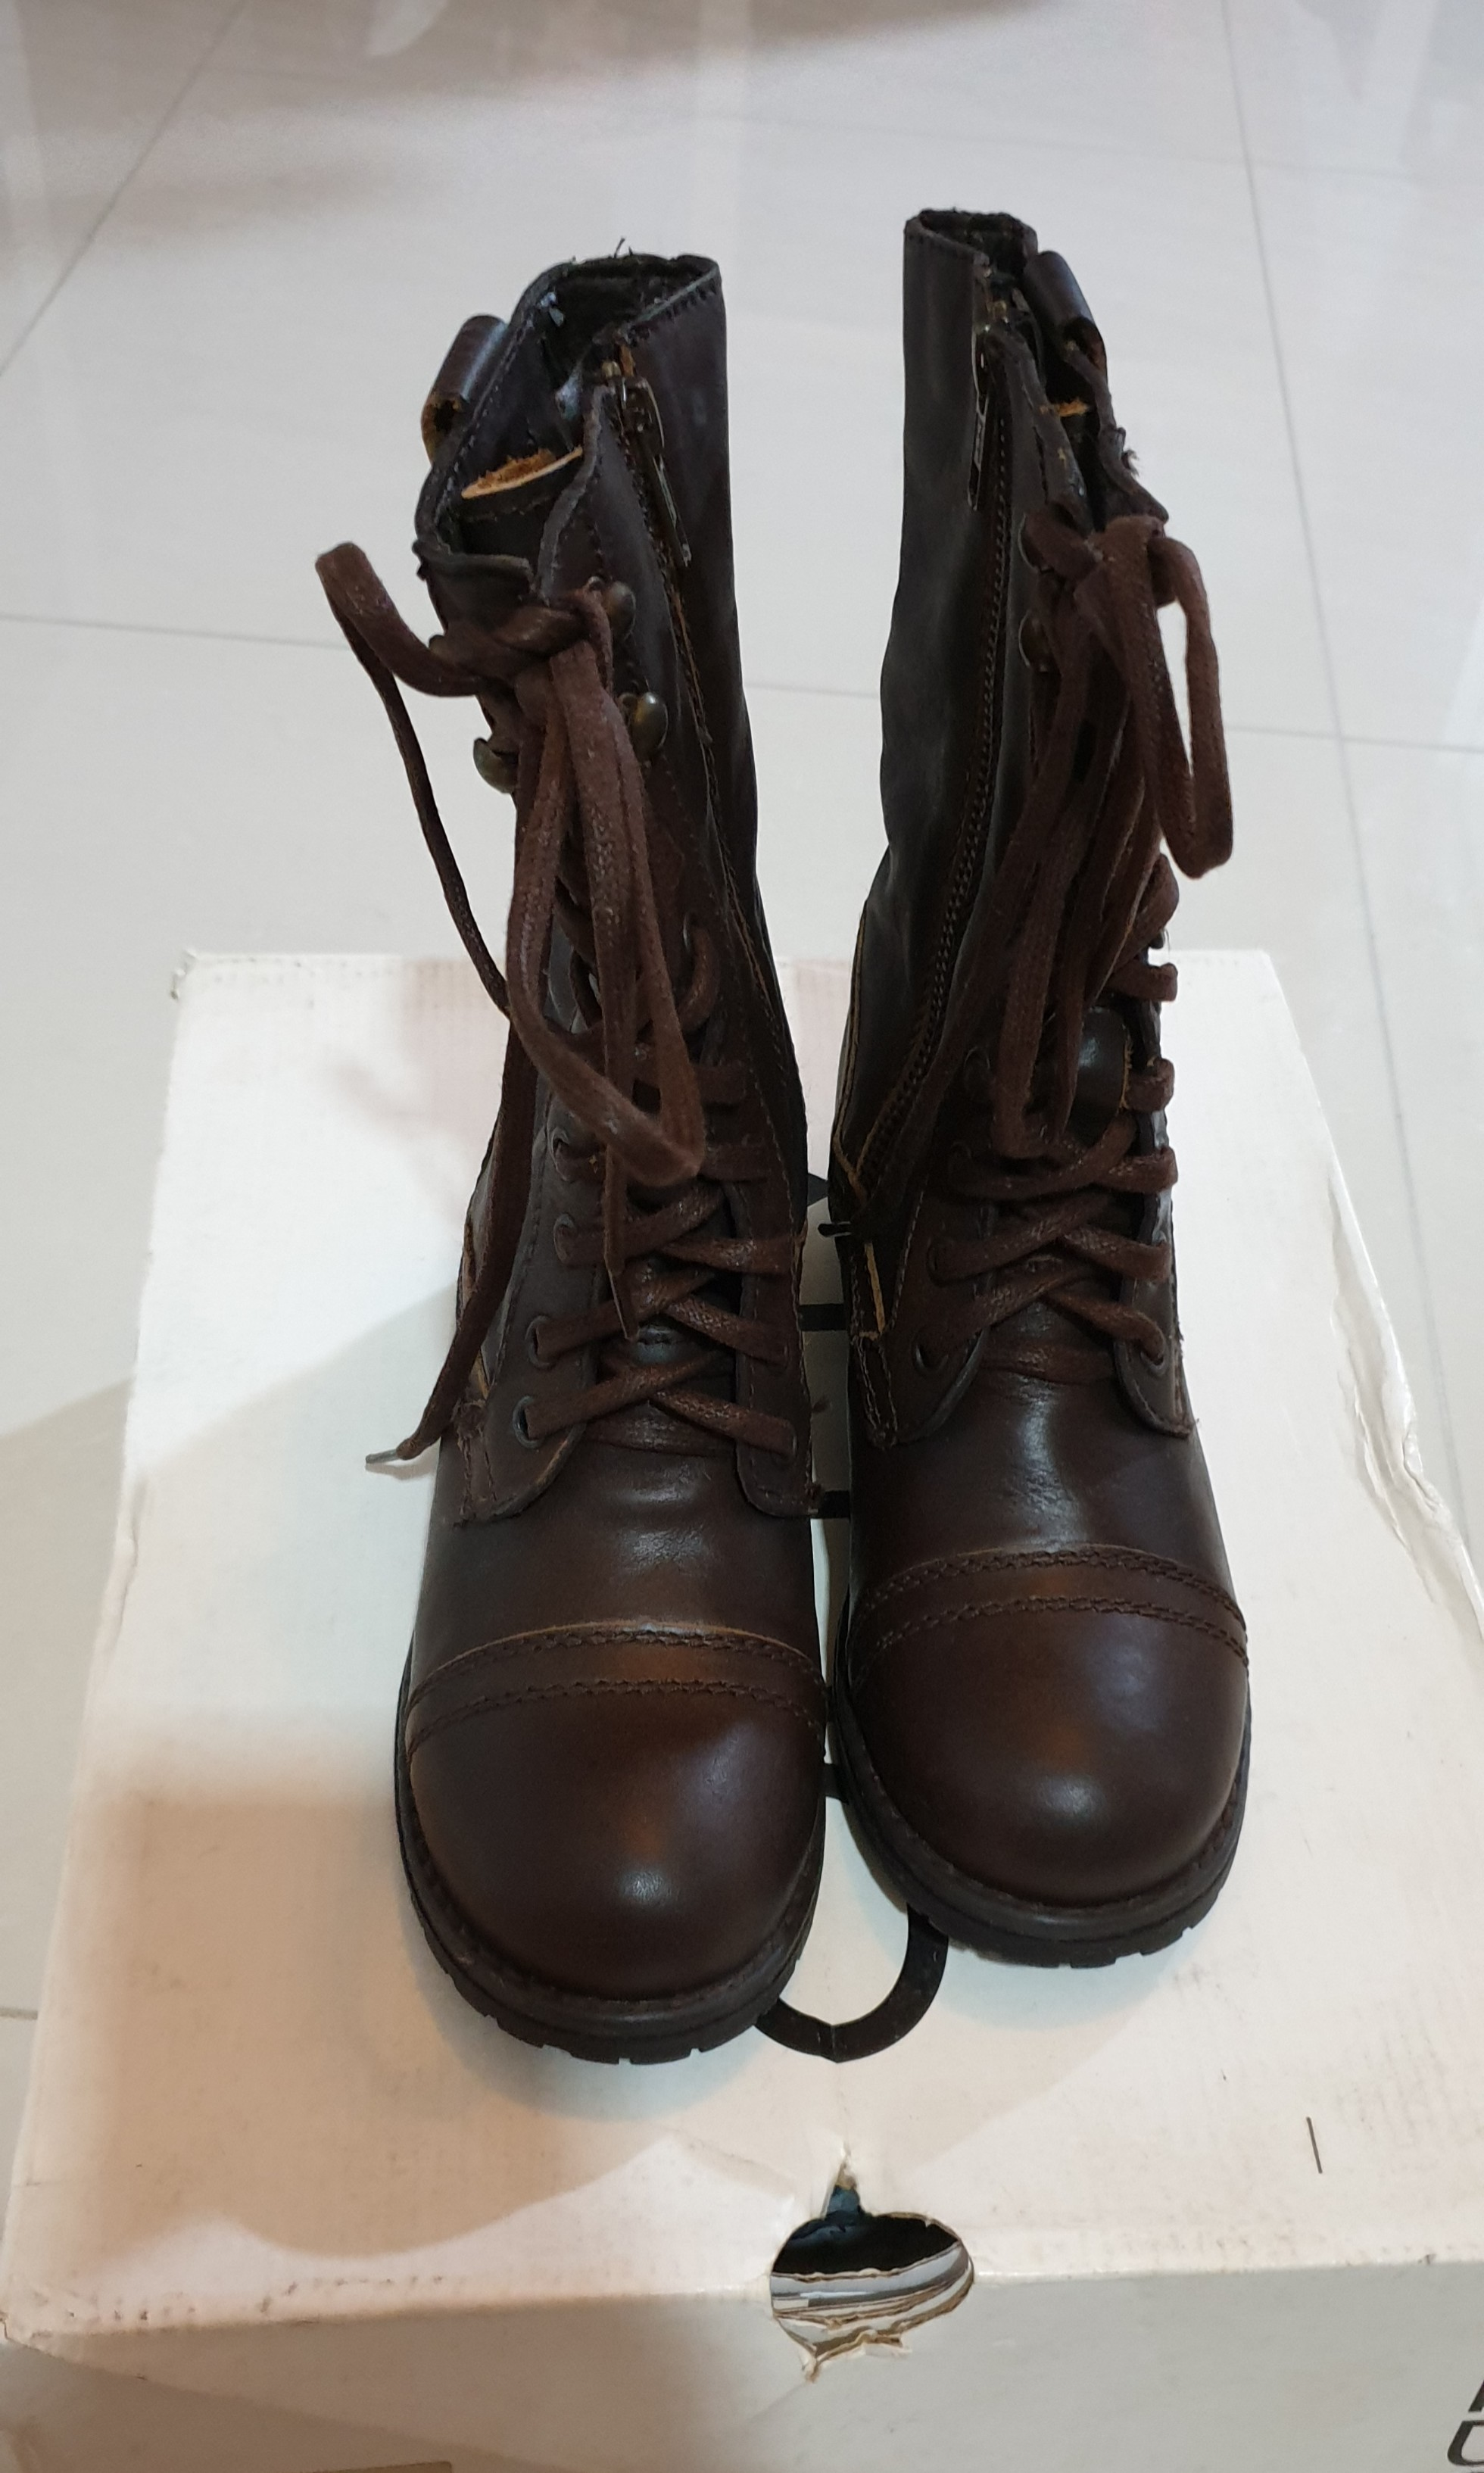 06567494c87 Aldo Leather boots, Women's Fashion, Shoes, Boots on Carousell